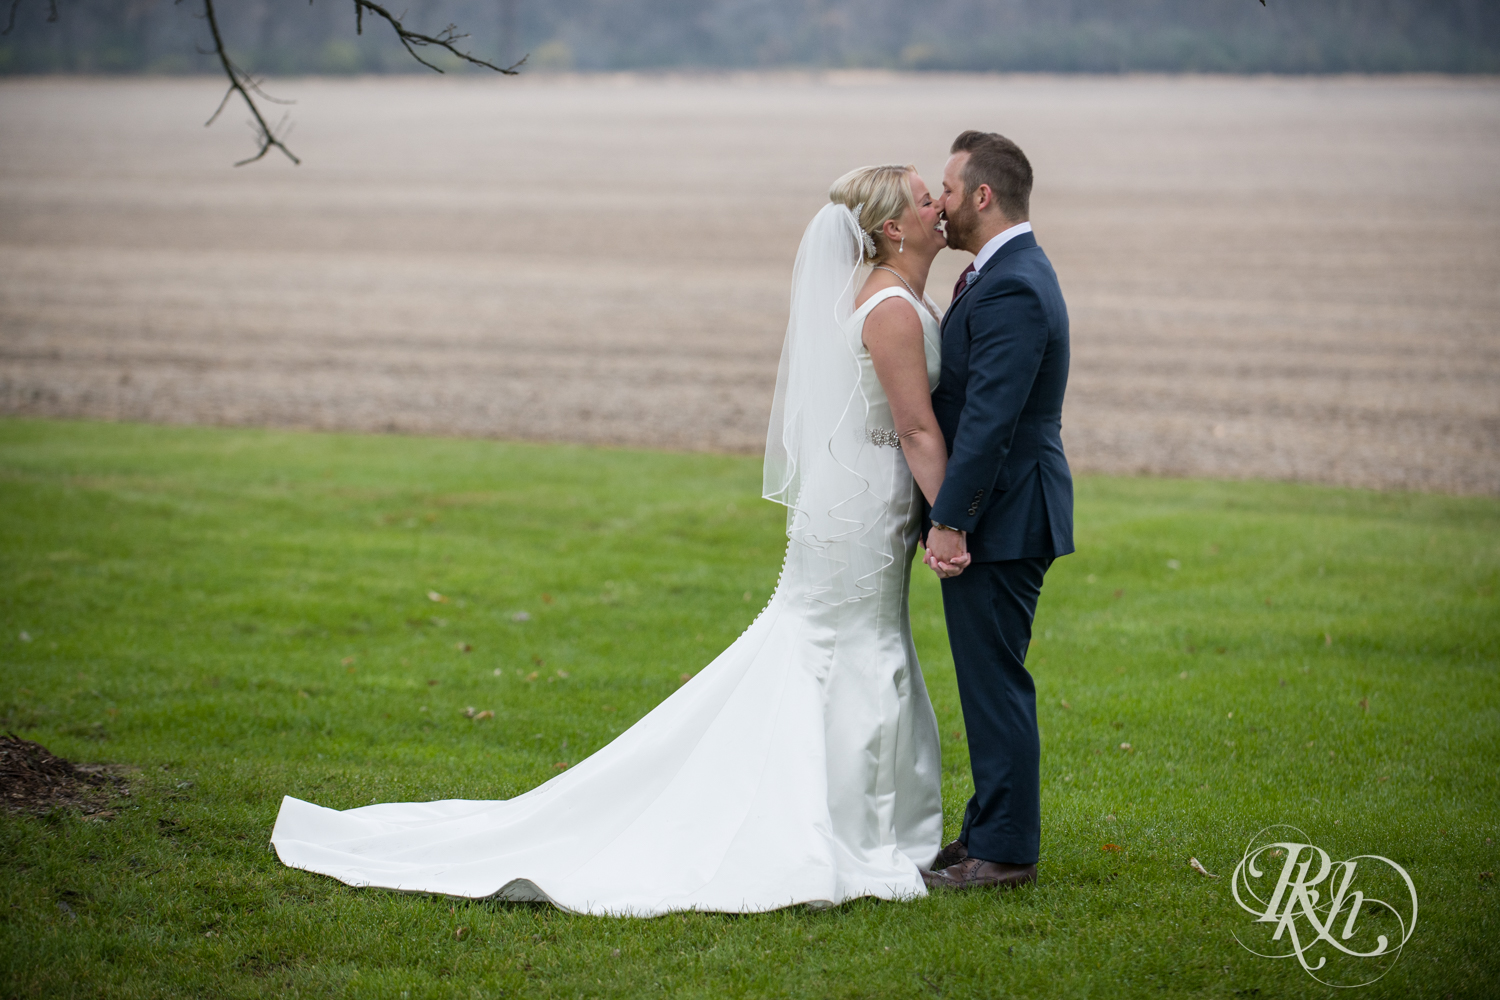 Amanda & Luke - Minnesota Wedding Photography - Mayowood Stone Barn - Rochester - RKH Images - Blog (32 of 67).jpg